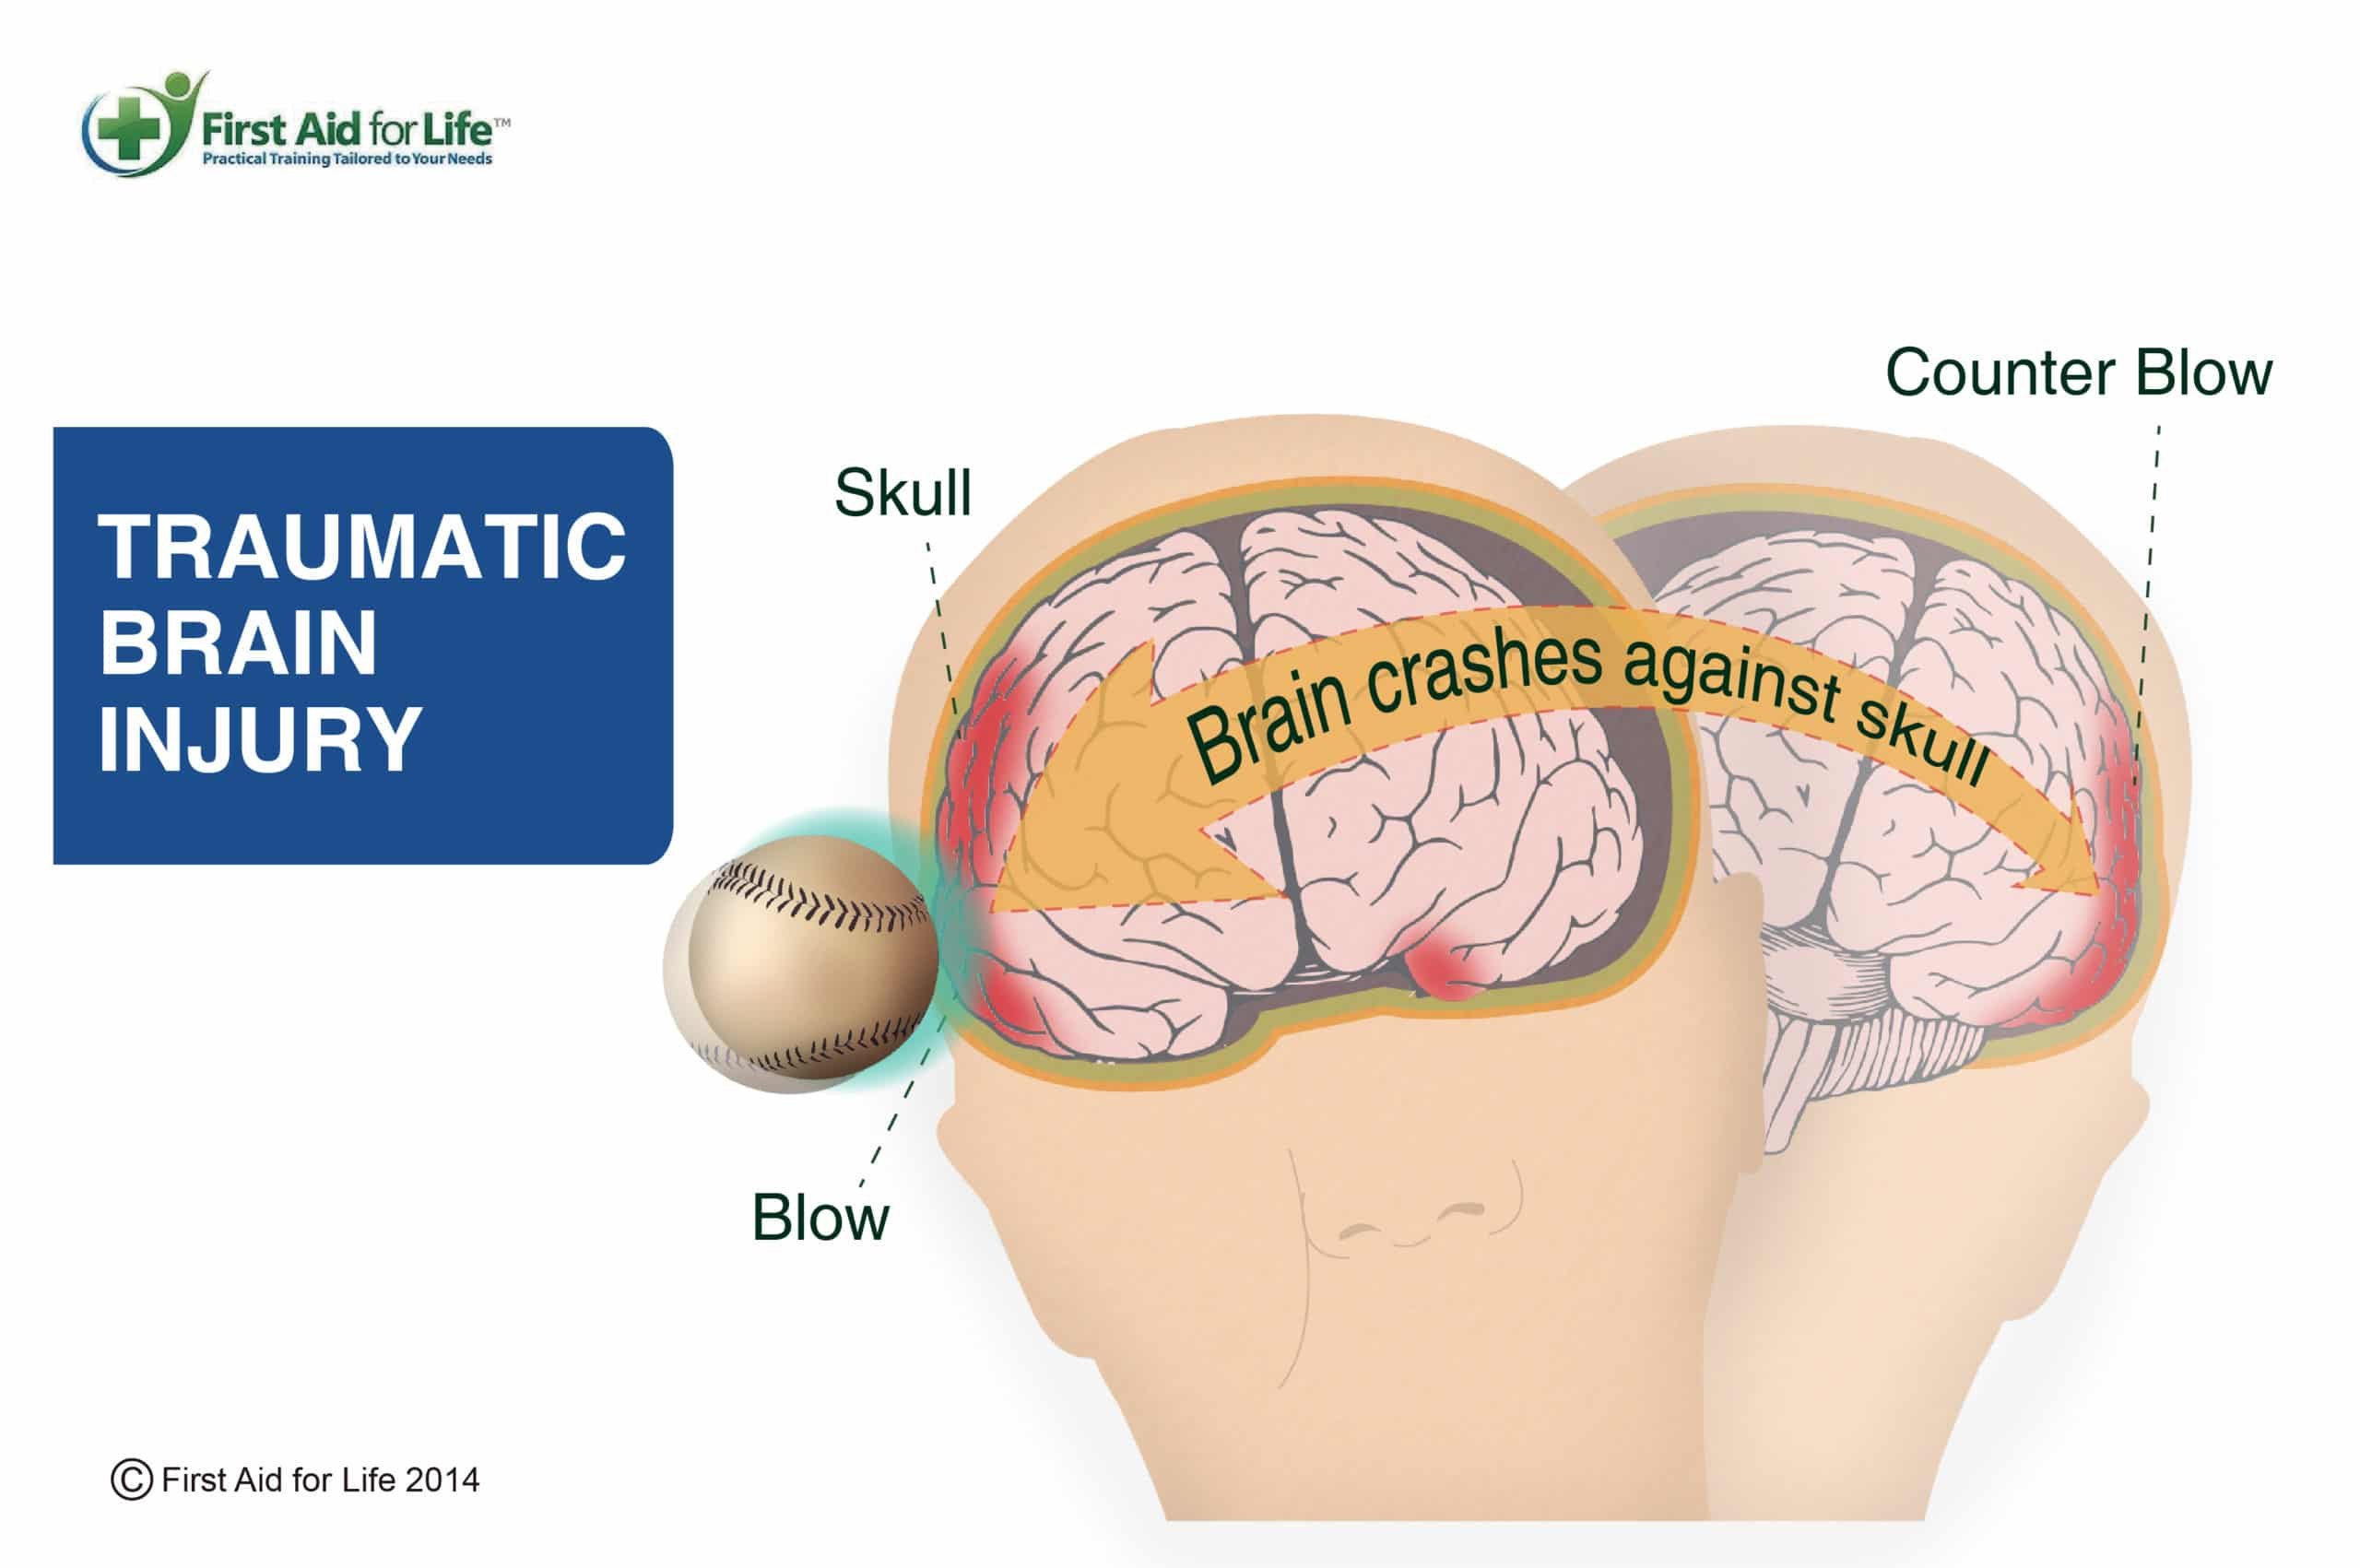 Concussion and traumatic brain injury